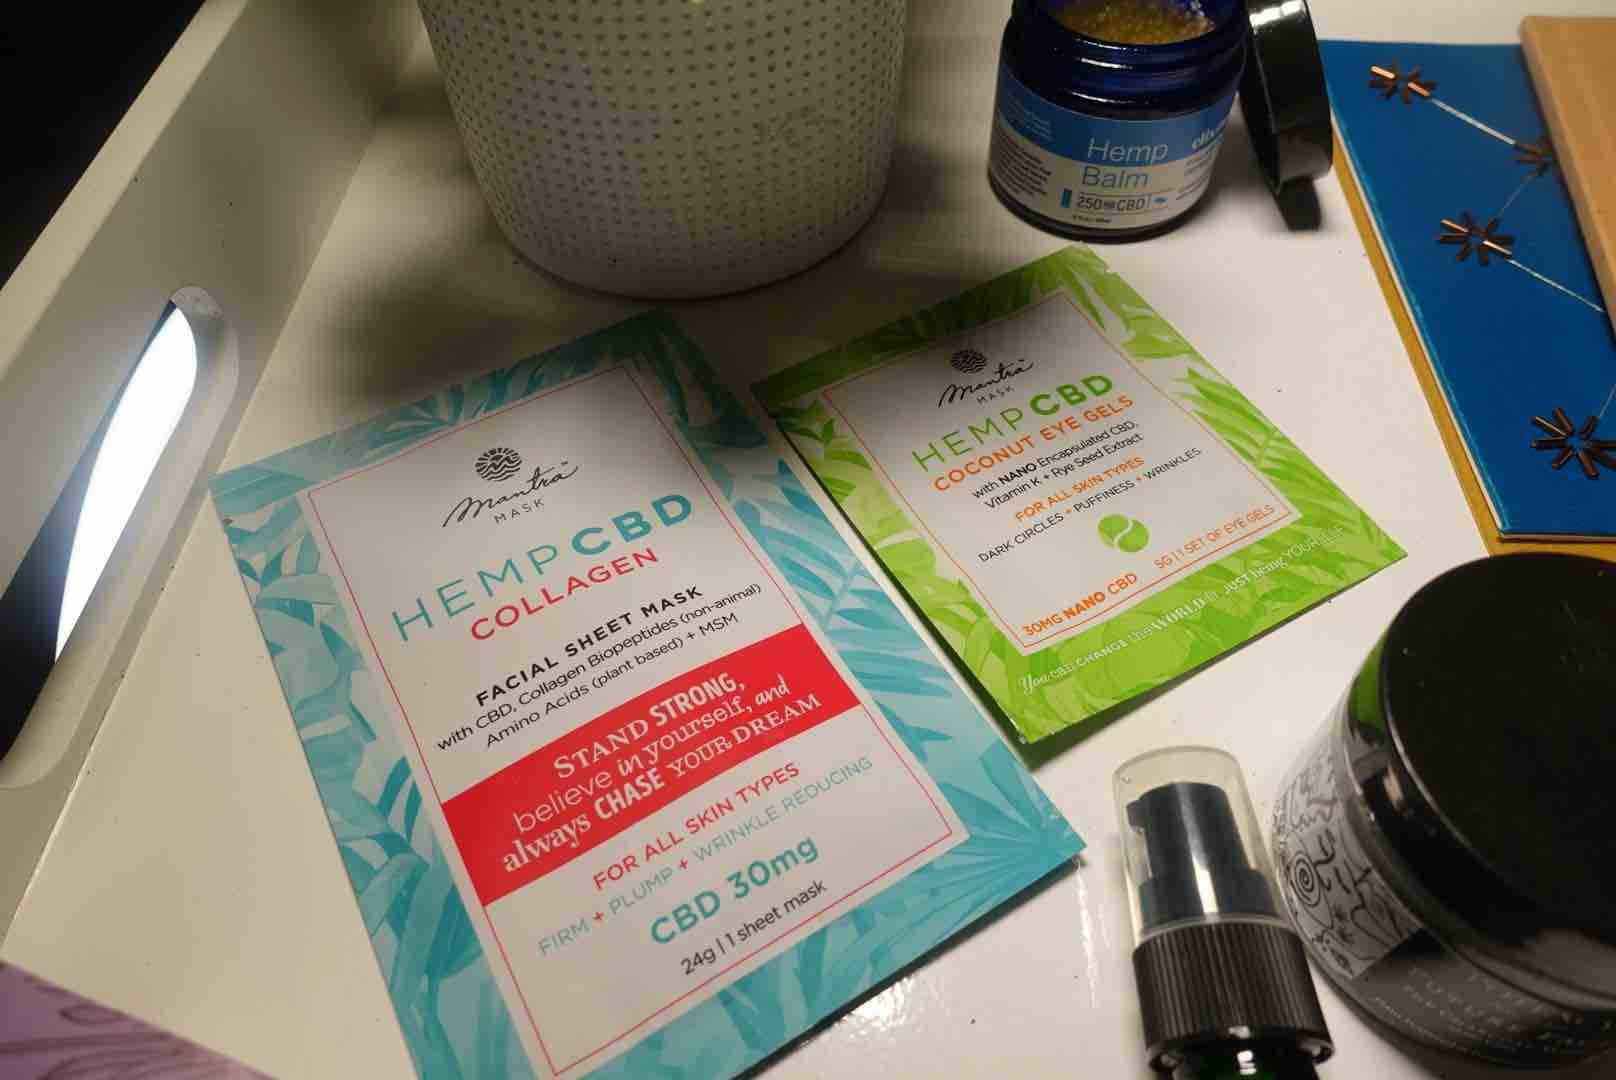 Hemp Facial Sheet Mask : These CBD Products Will Help Alleviate Discomfort From Stress, Aches And Tensions